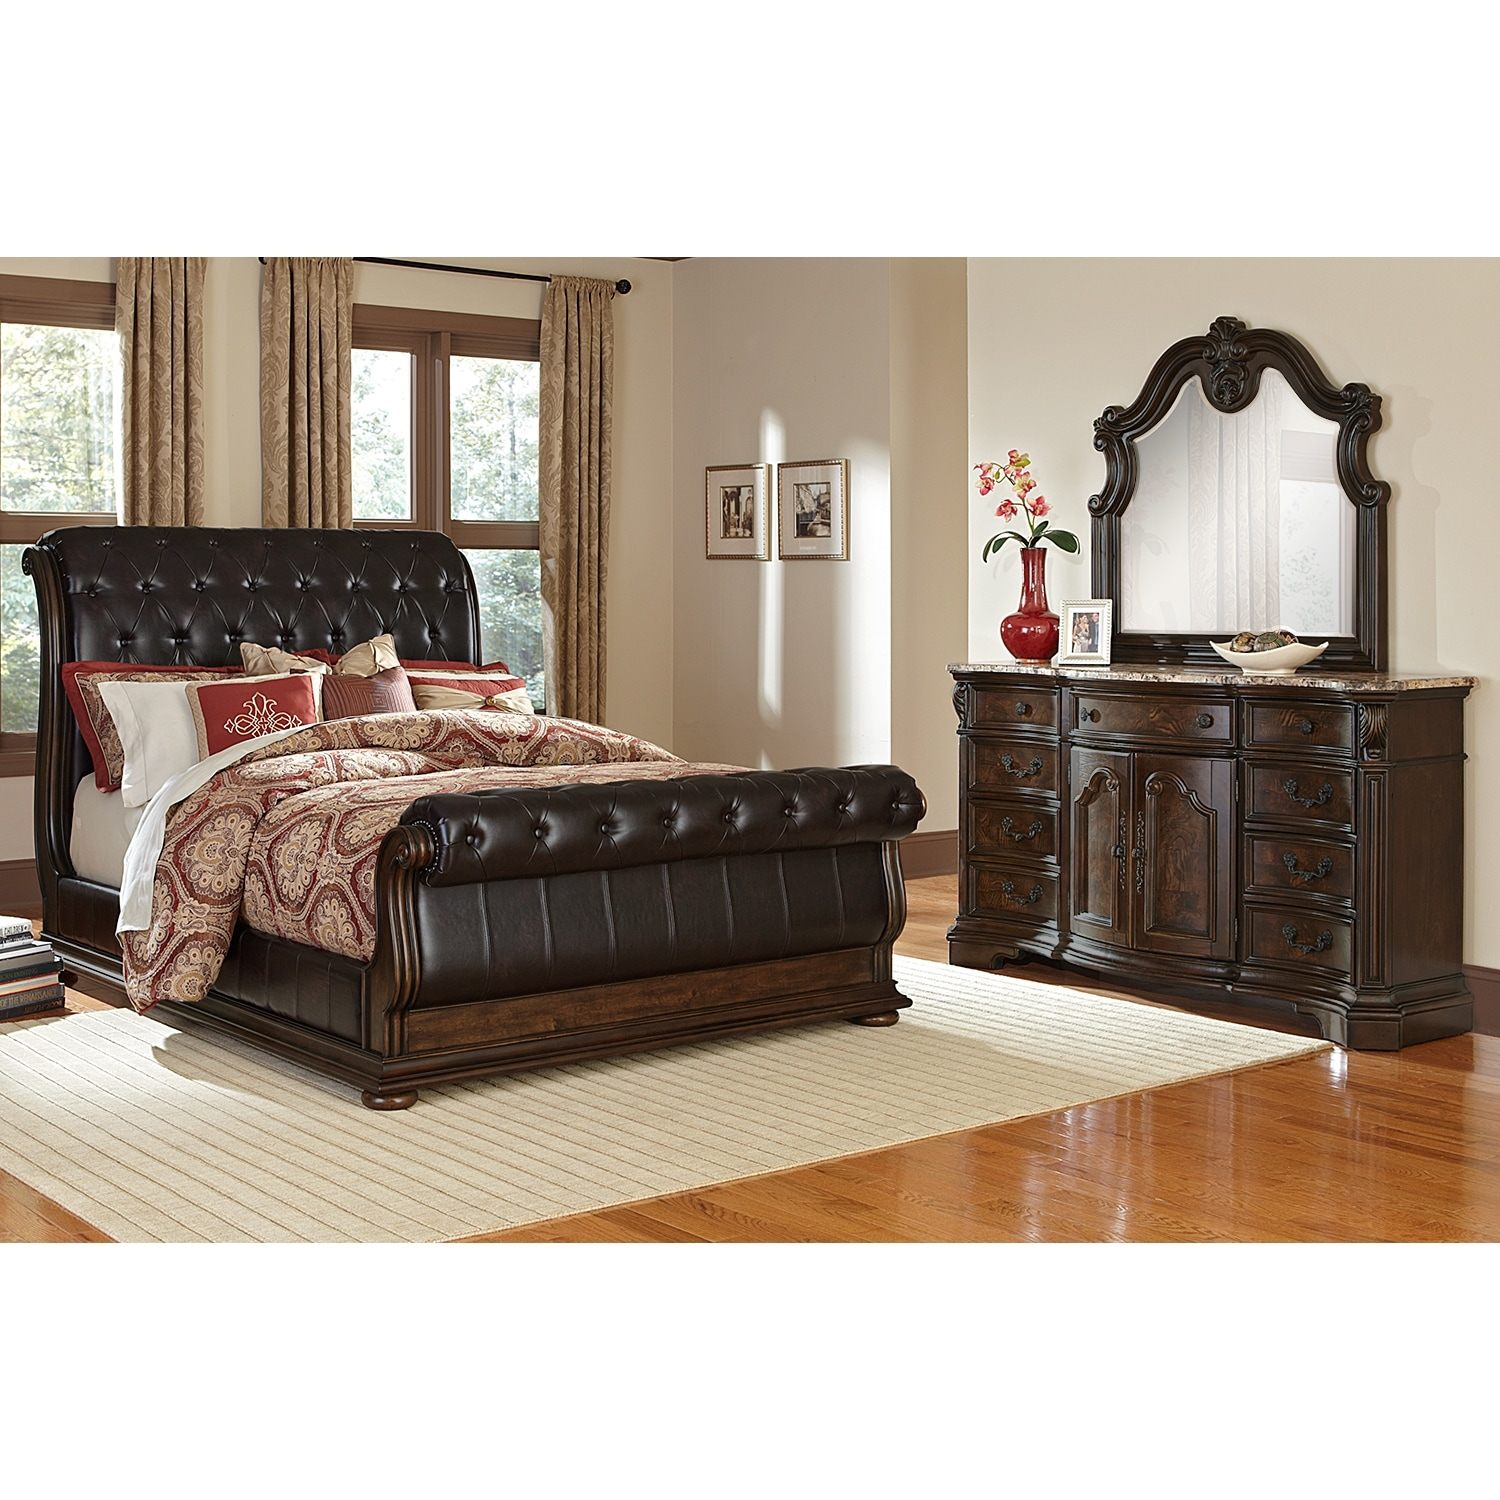 Monticello 5 piece king sleigh bedroom set pecan for King sleigh bed bedroom sets